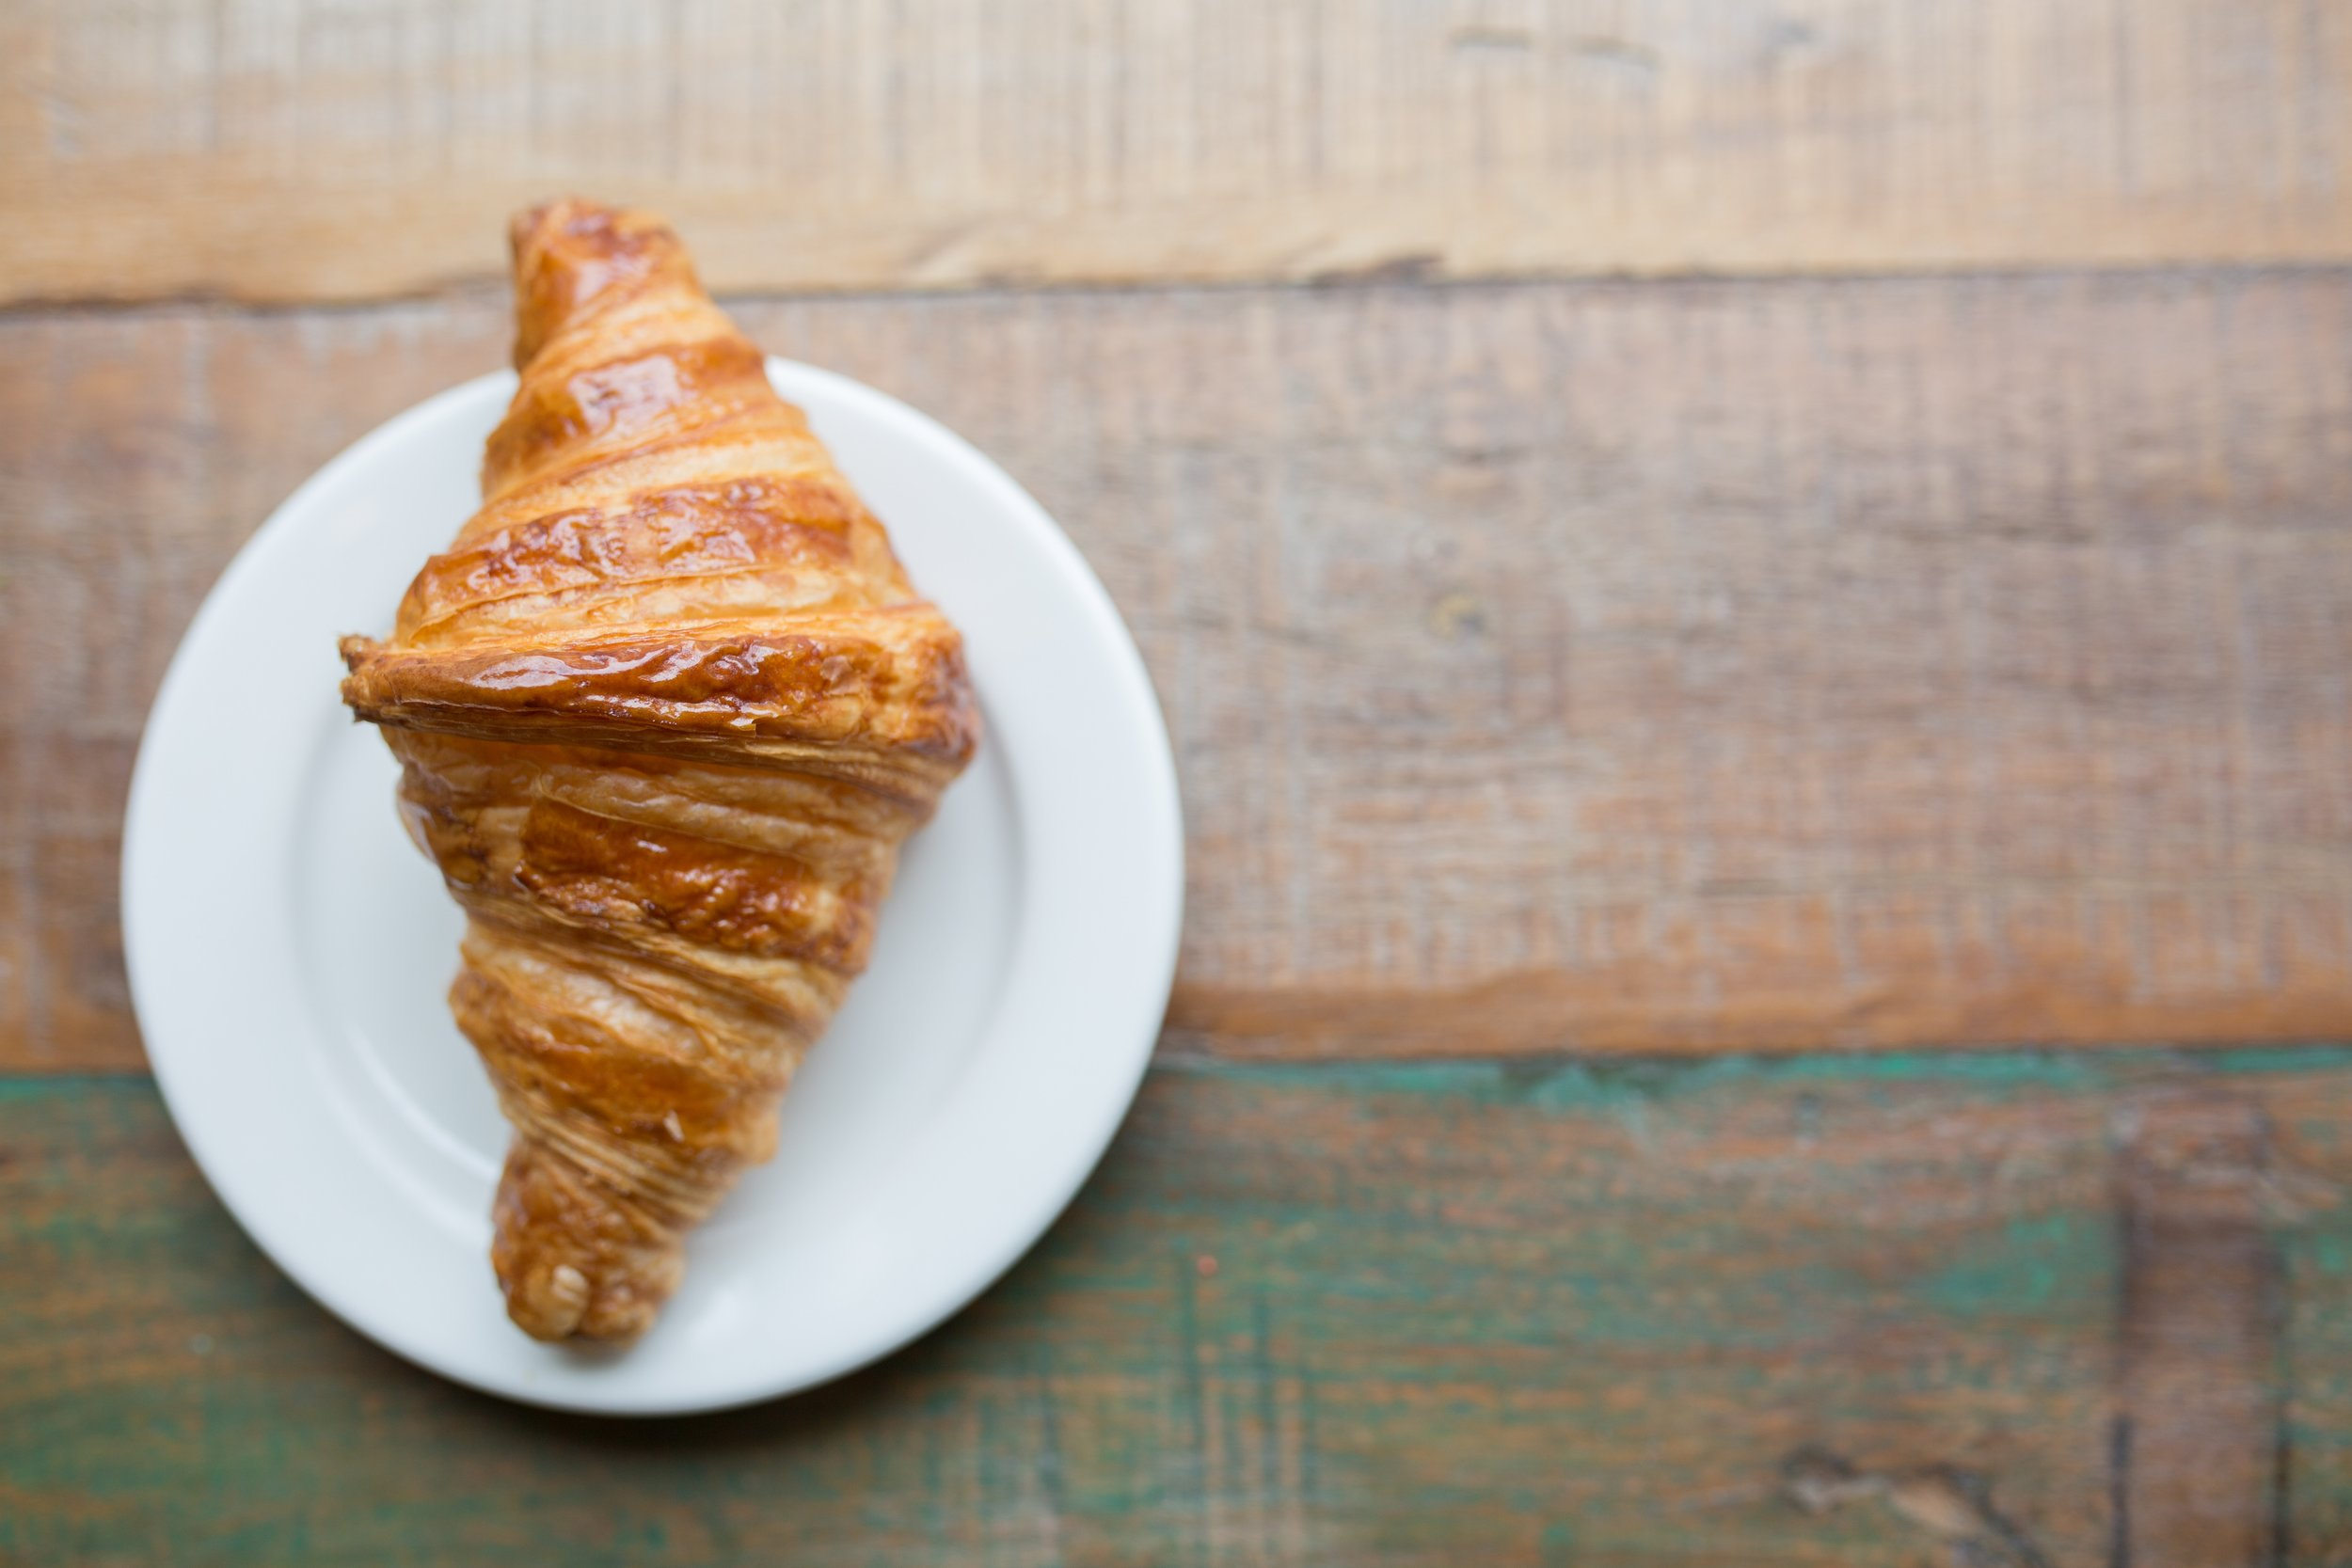 Coffee & Pastries Café - 9.30am - 10.20amEnjoy a hot drink and pastry with friendsEspresso: £1.70 // Americano: £1.80 // Cappuccino £1.90 // Latte: £2.00 + 30p for a shot of flavour